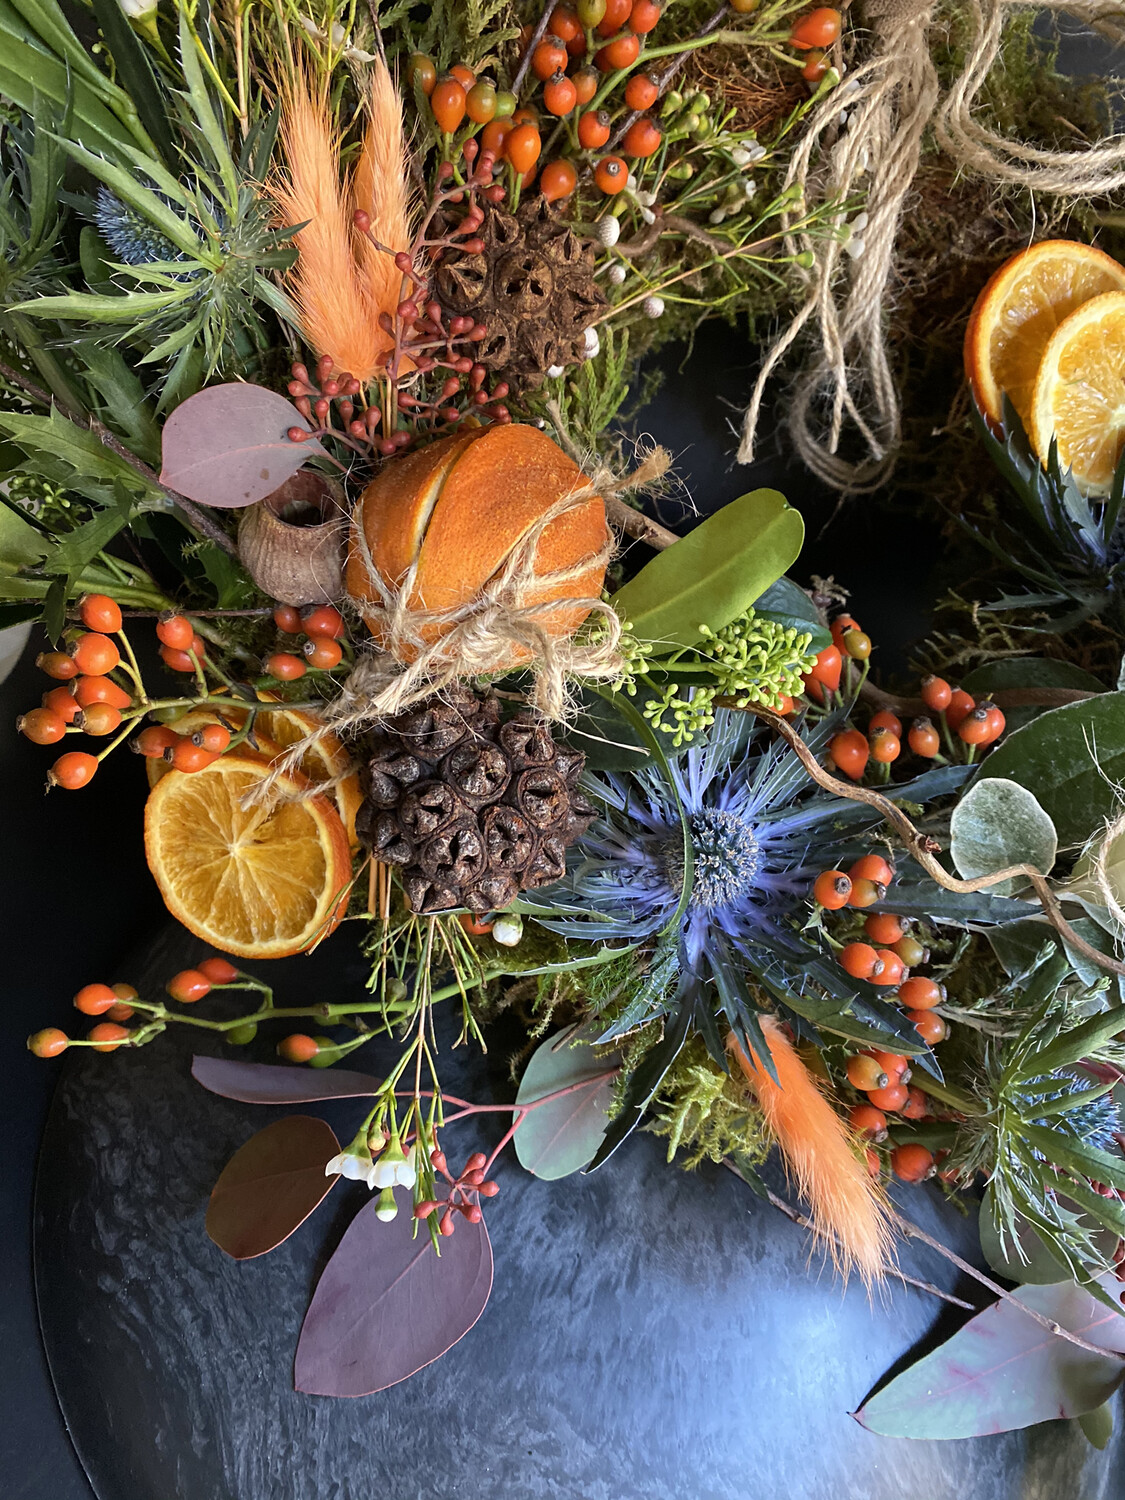 DIY AUTUMN WREATH KIT - BUD SIZE